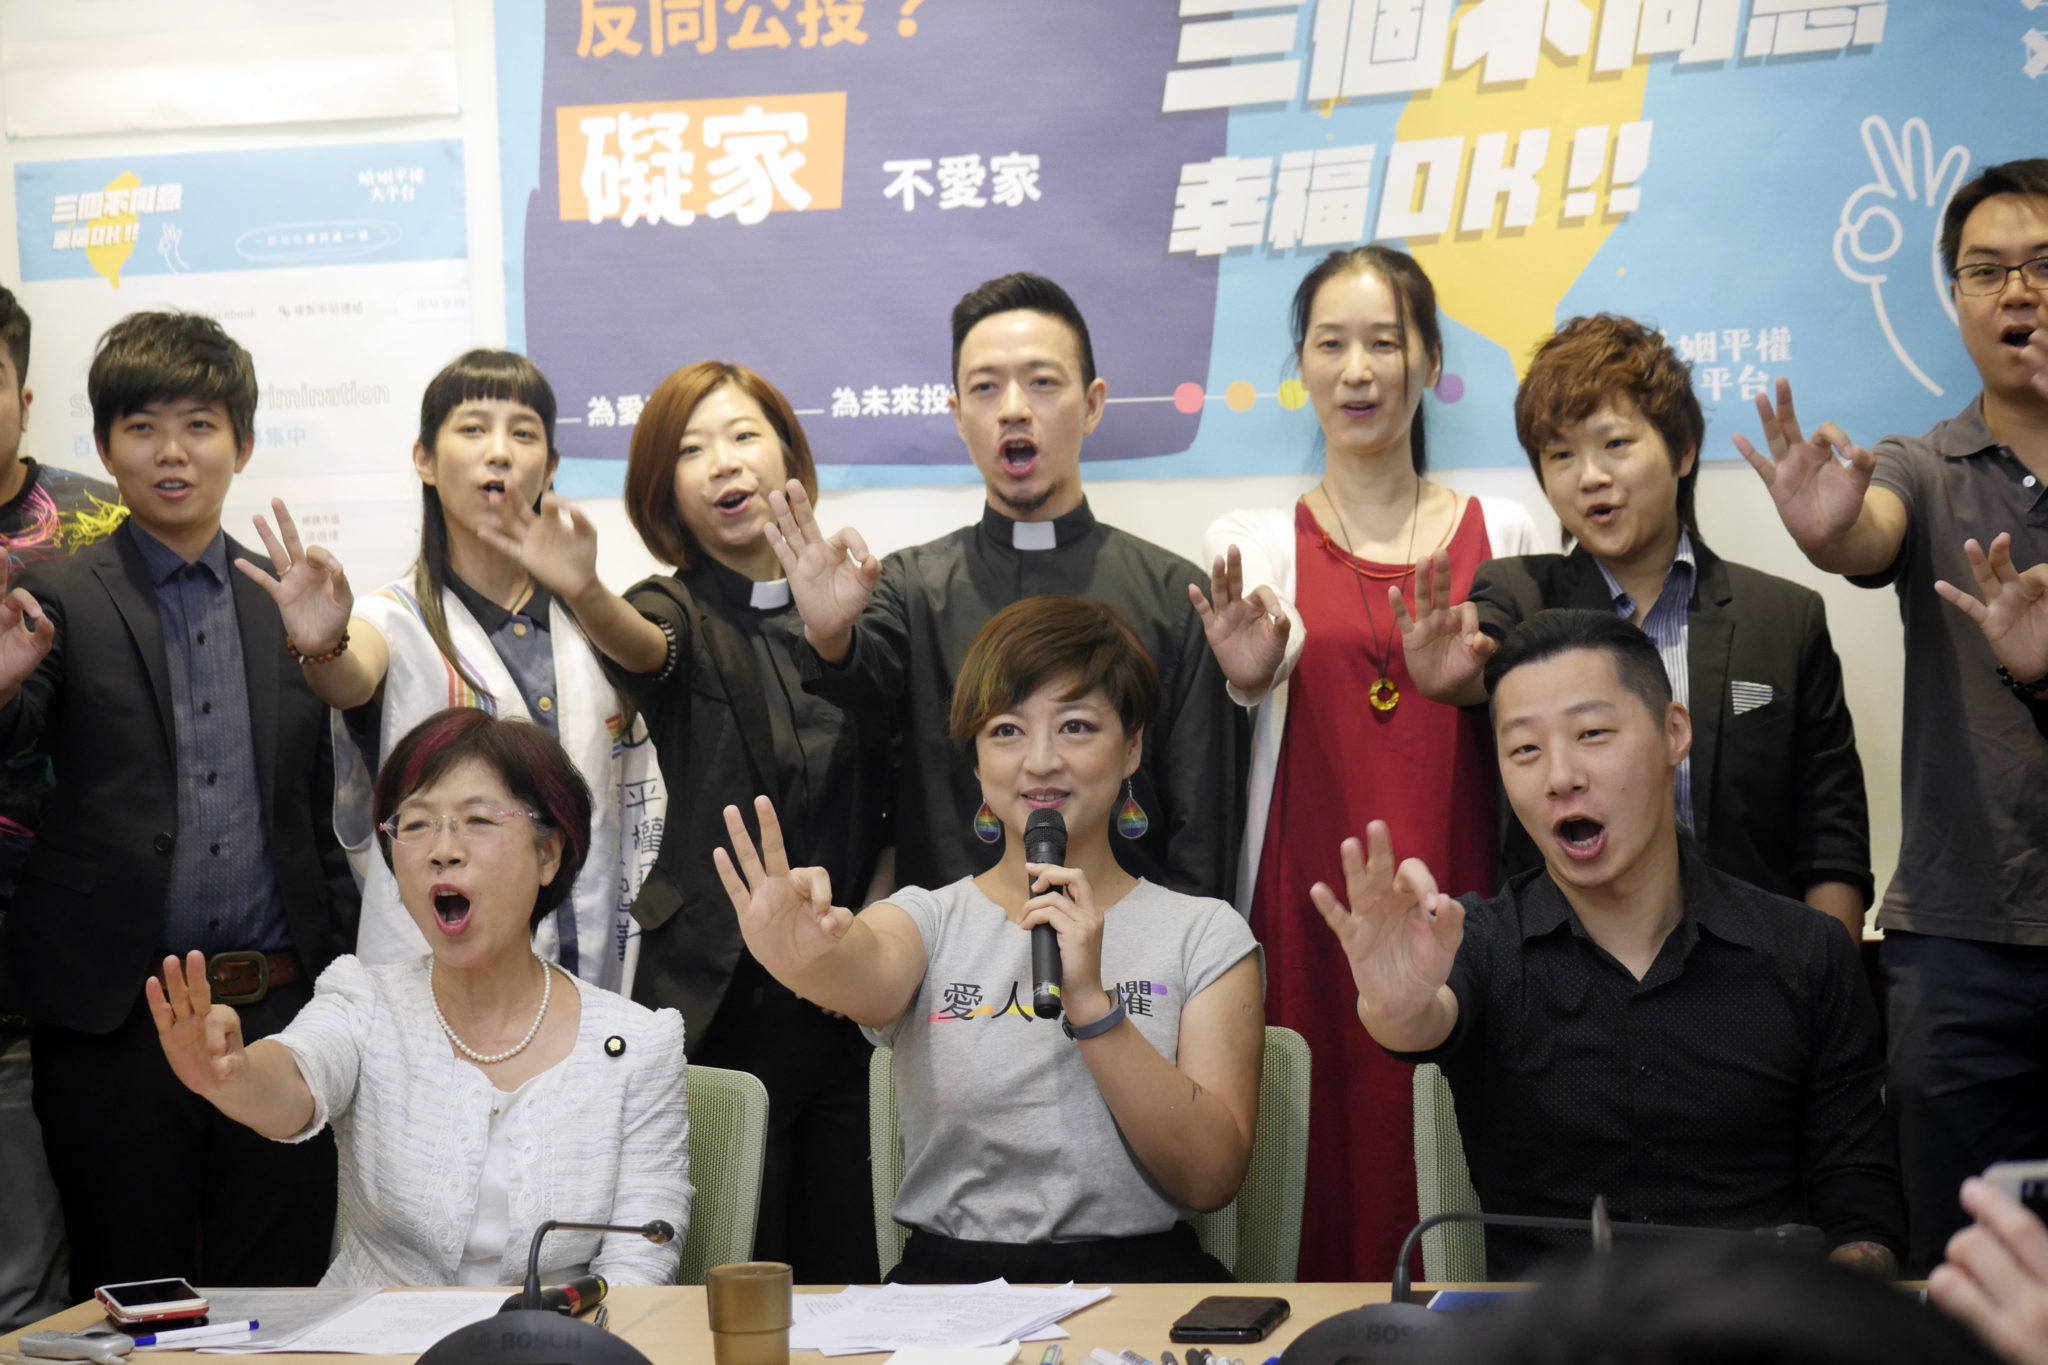 LGBTI activists in Taipei, Taiwan launch equal marriage referendum campaign